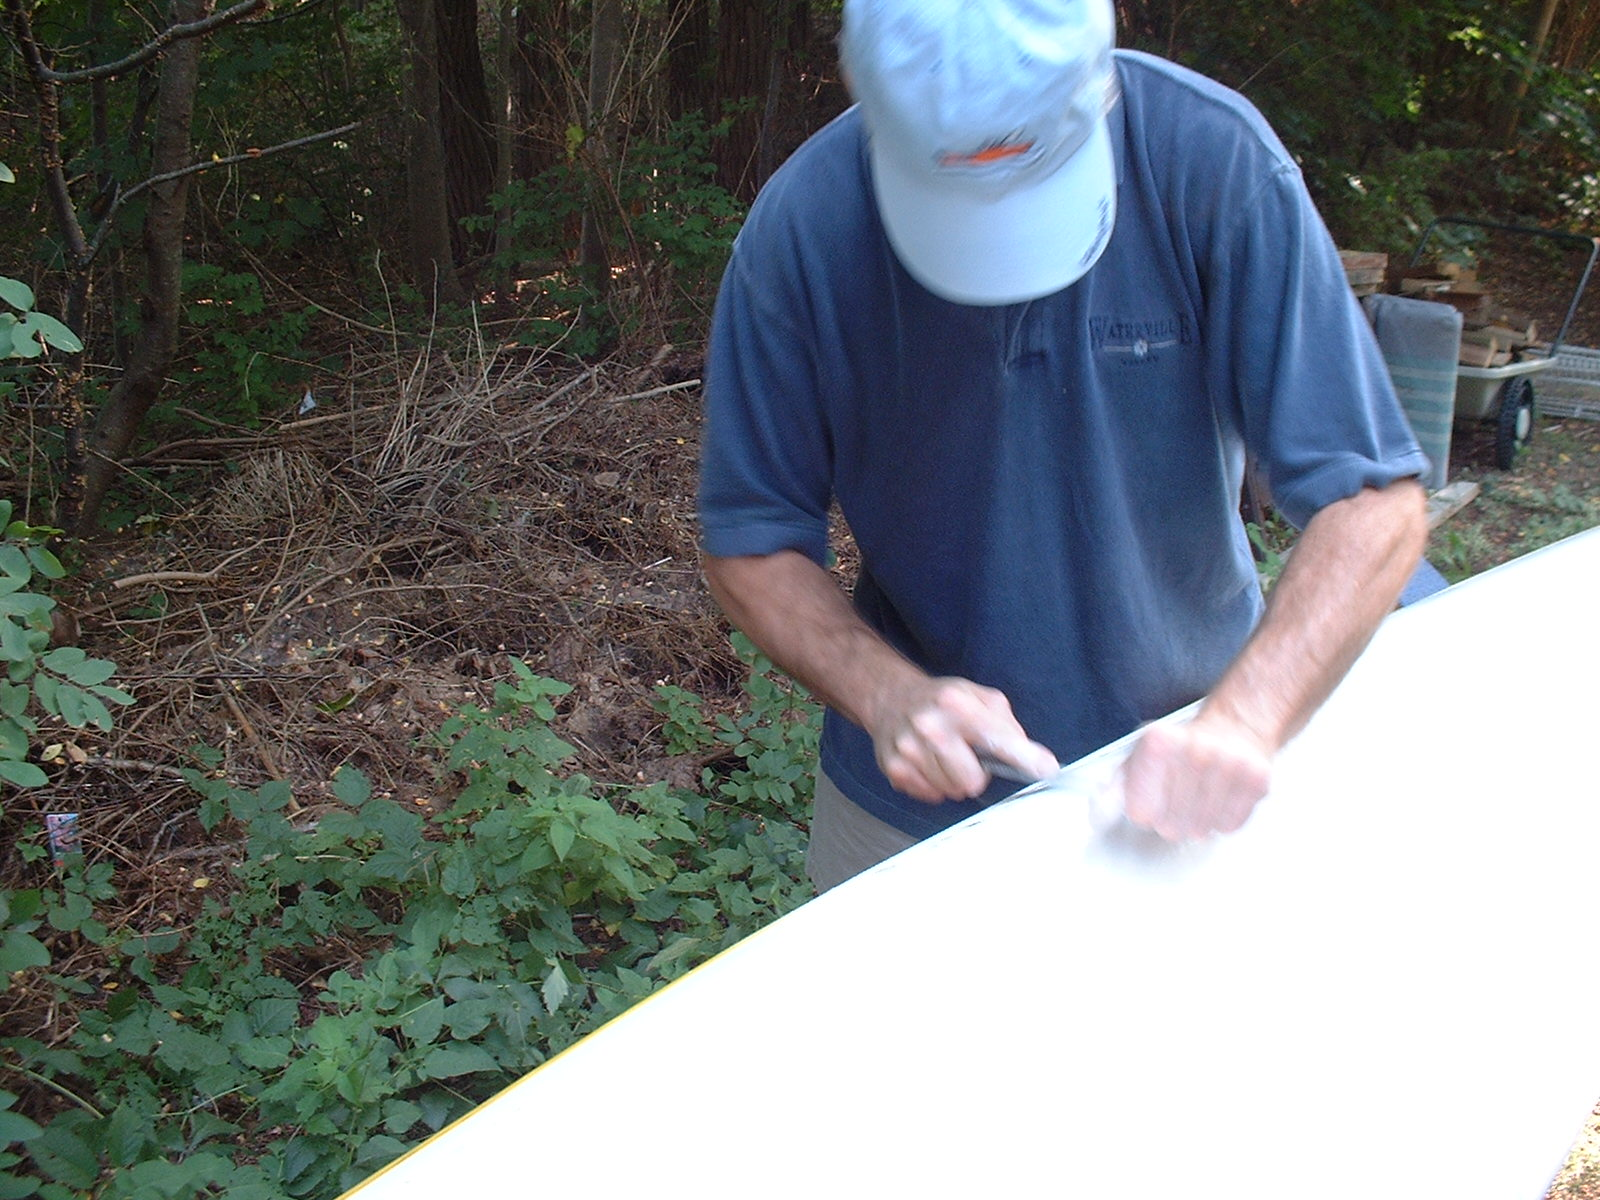 Removing damage fiberglass from the kayak hull